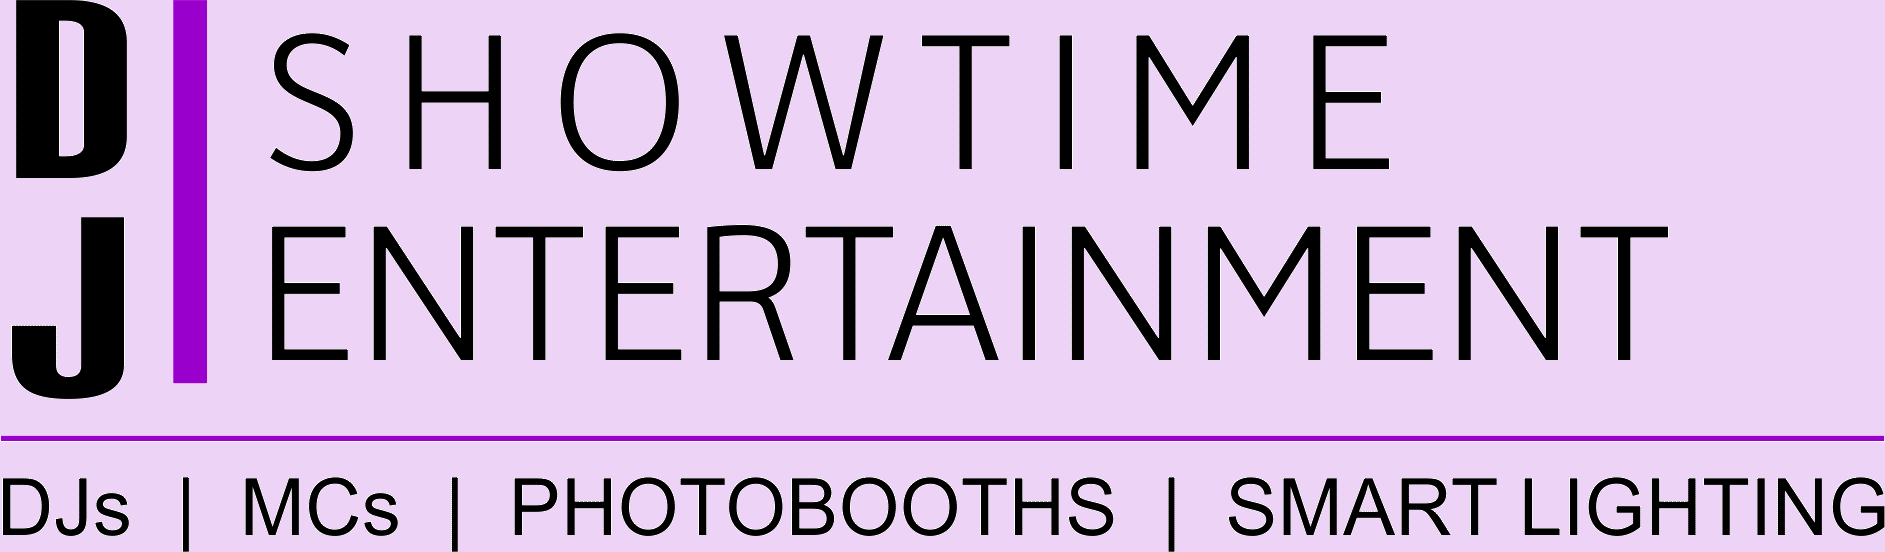 Showtime Entertainment, Sacramento Wedding & Event DJ Services, Uplighting